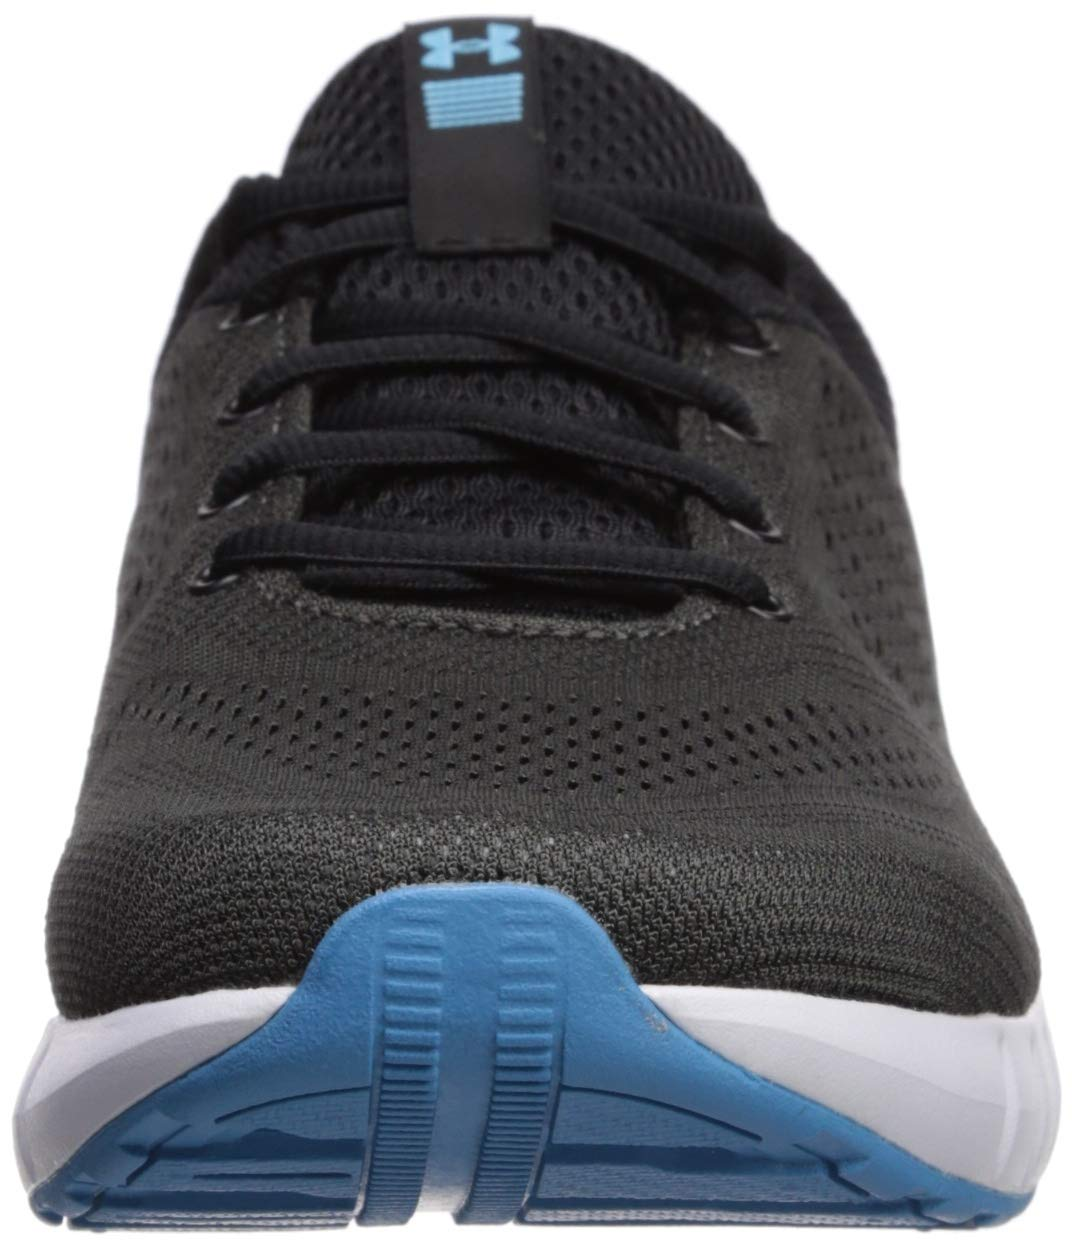 Under Armour Men's Micro G Pursuit Running Shoe, Academy Blue (402)/Black, 9.5 by Under Armour (Image #4)